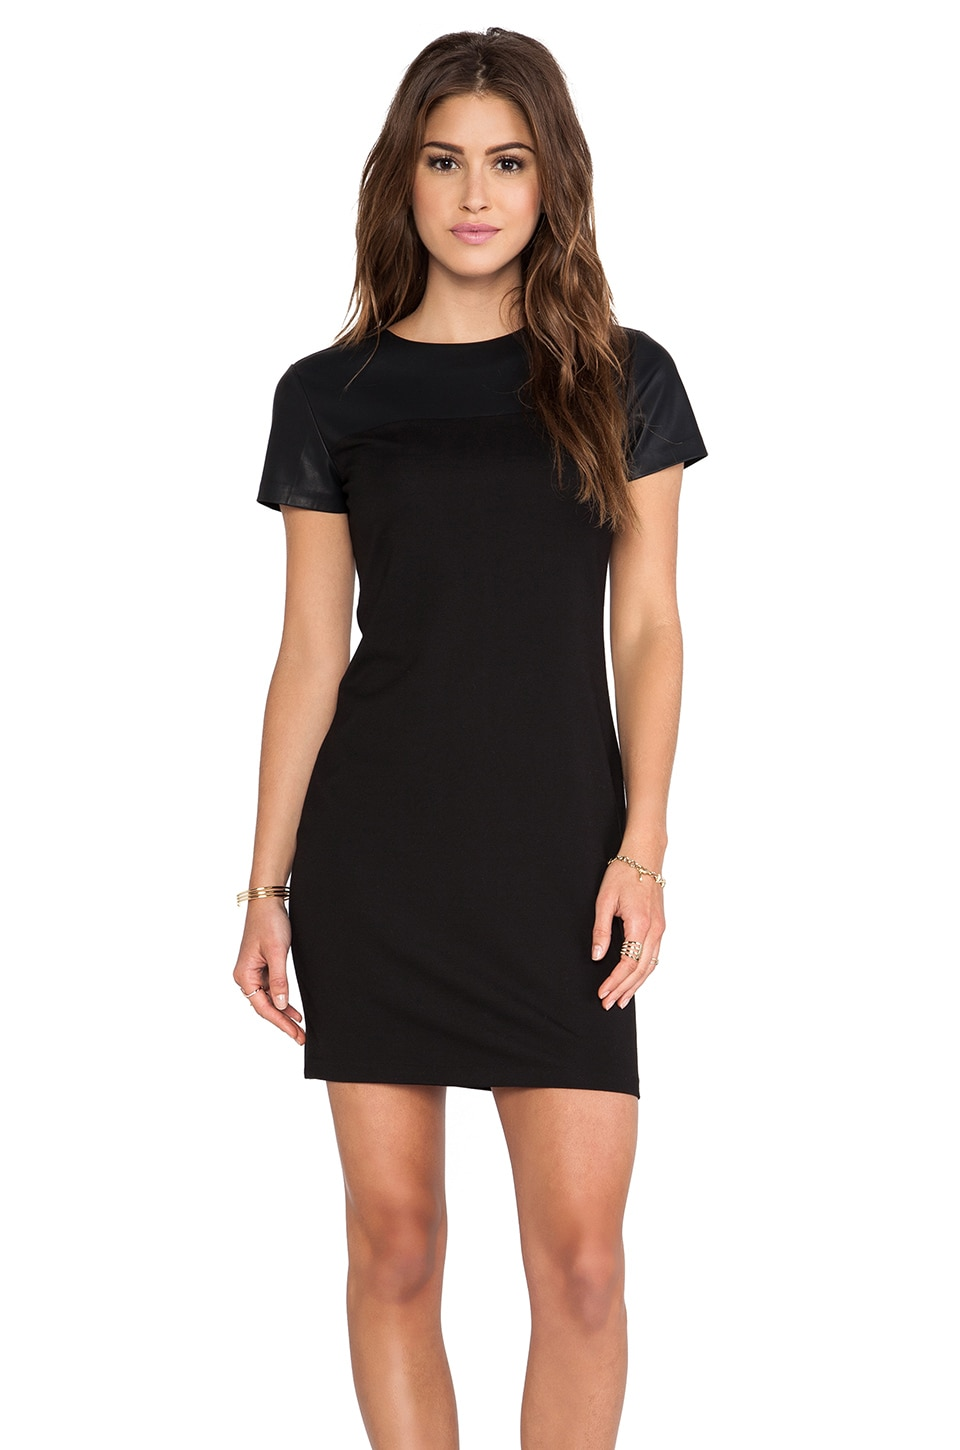 BB Dakota Zocia Dress in Black